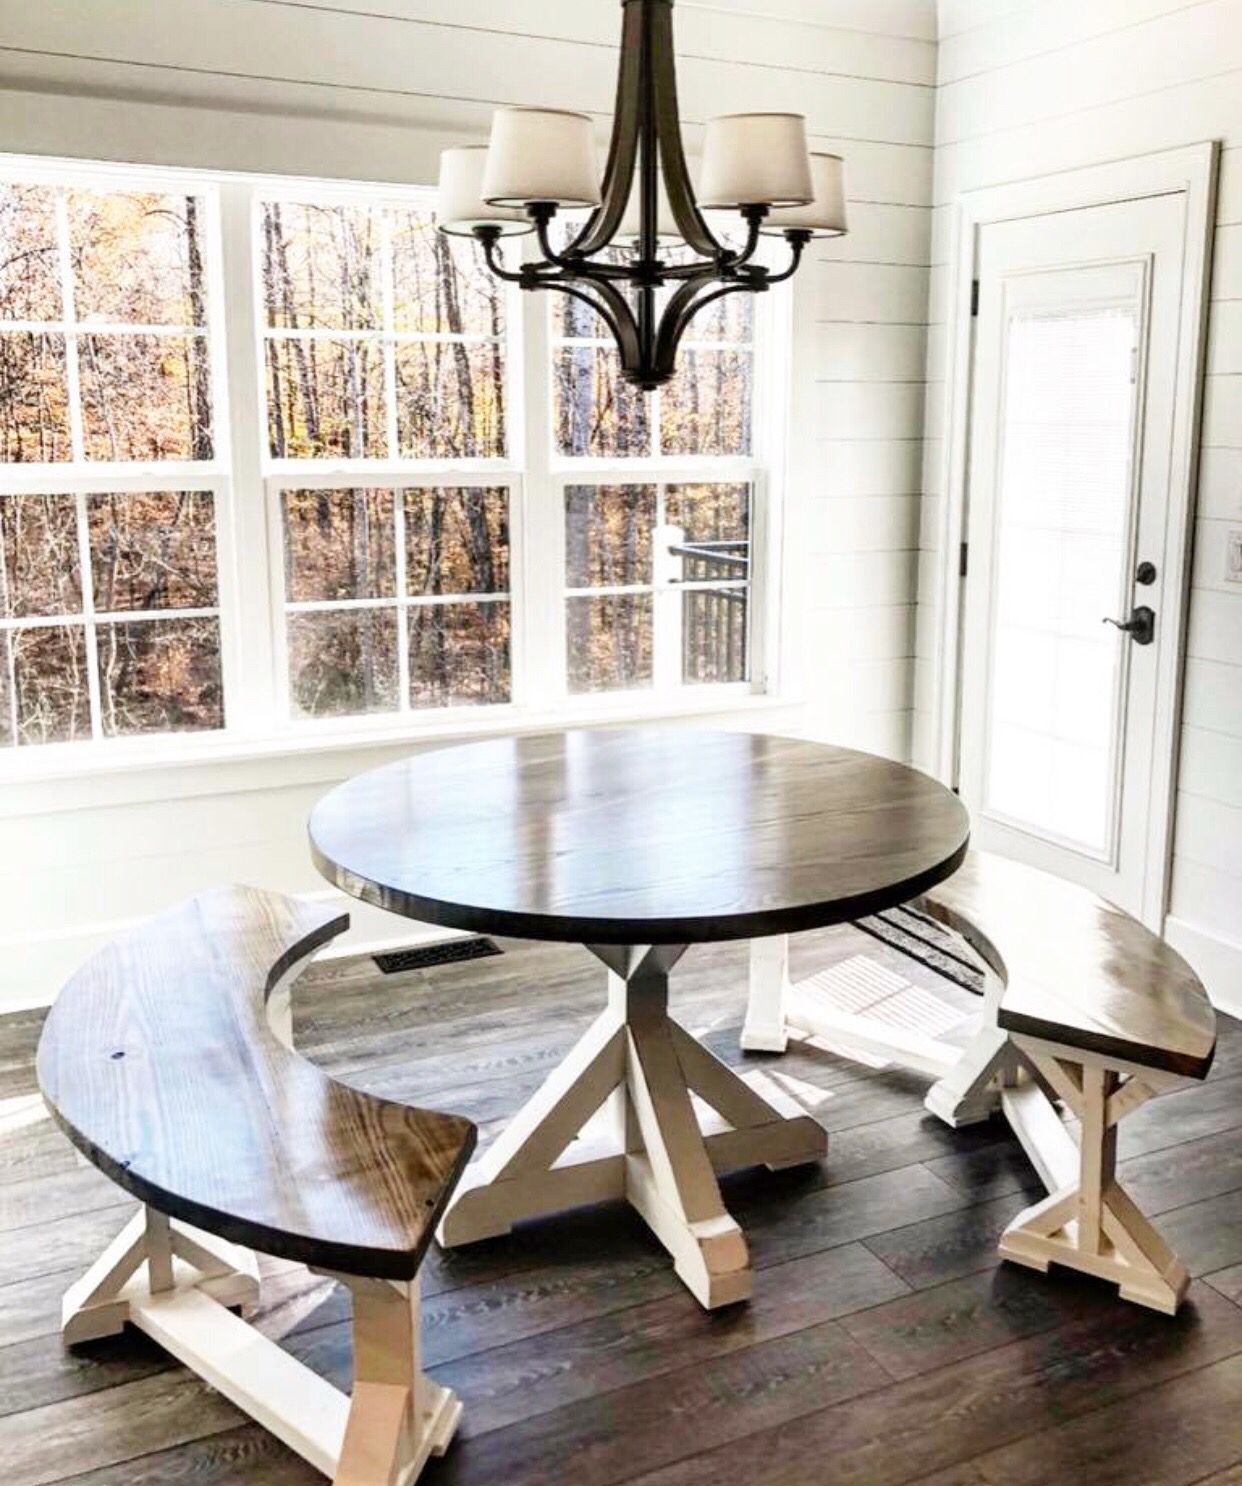 Custom Circle Table With Curved Benches Built By Hillbuildit